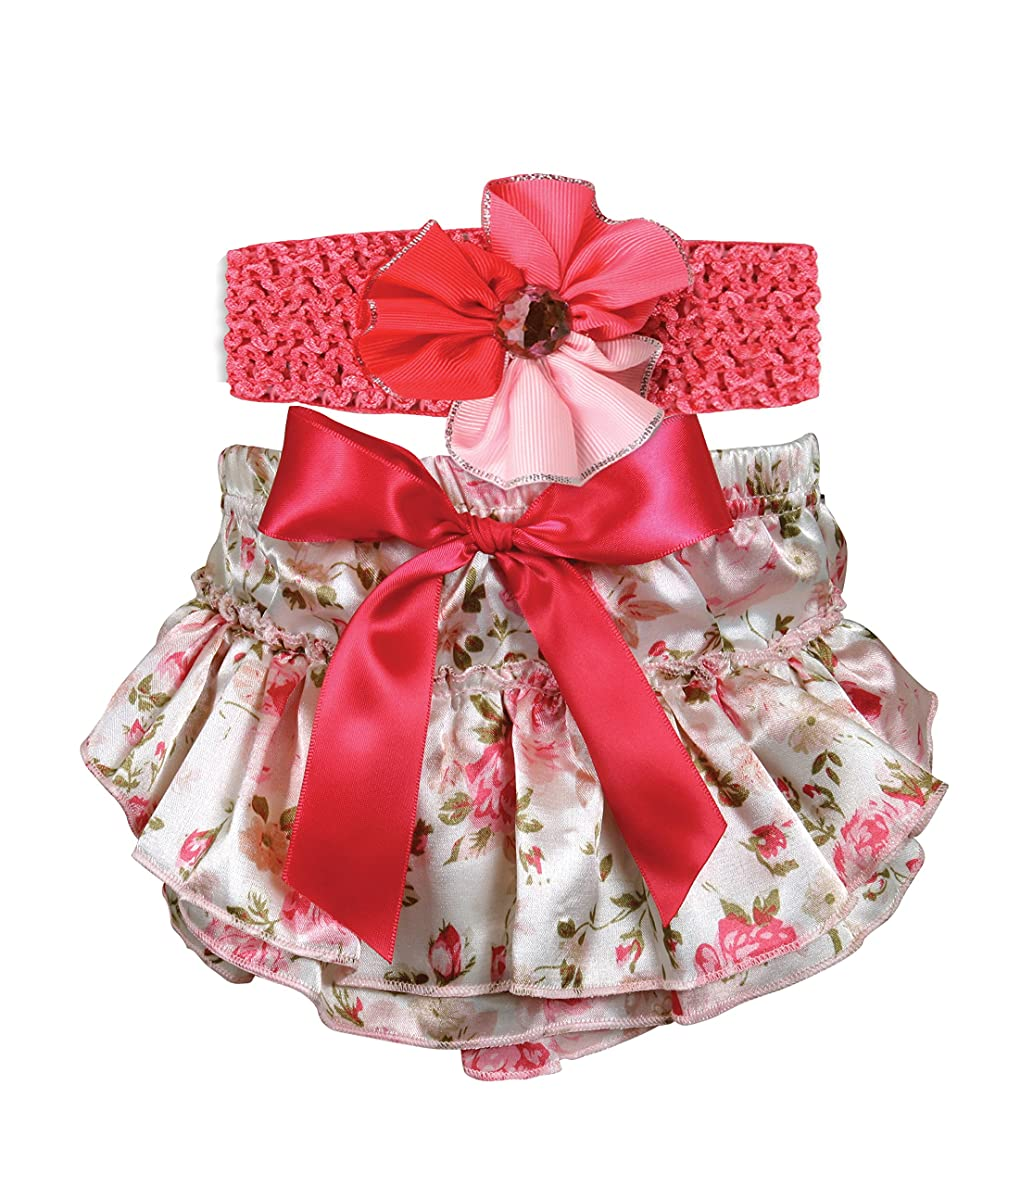 Stephan Baby Ruffled Diaper Cover and Flower Headband Gift Set, Pink Roses, 6-12 Months